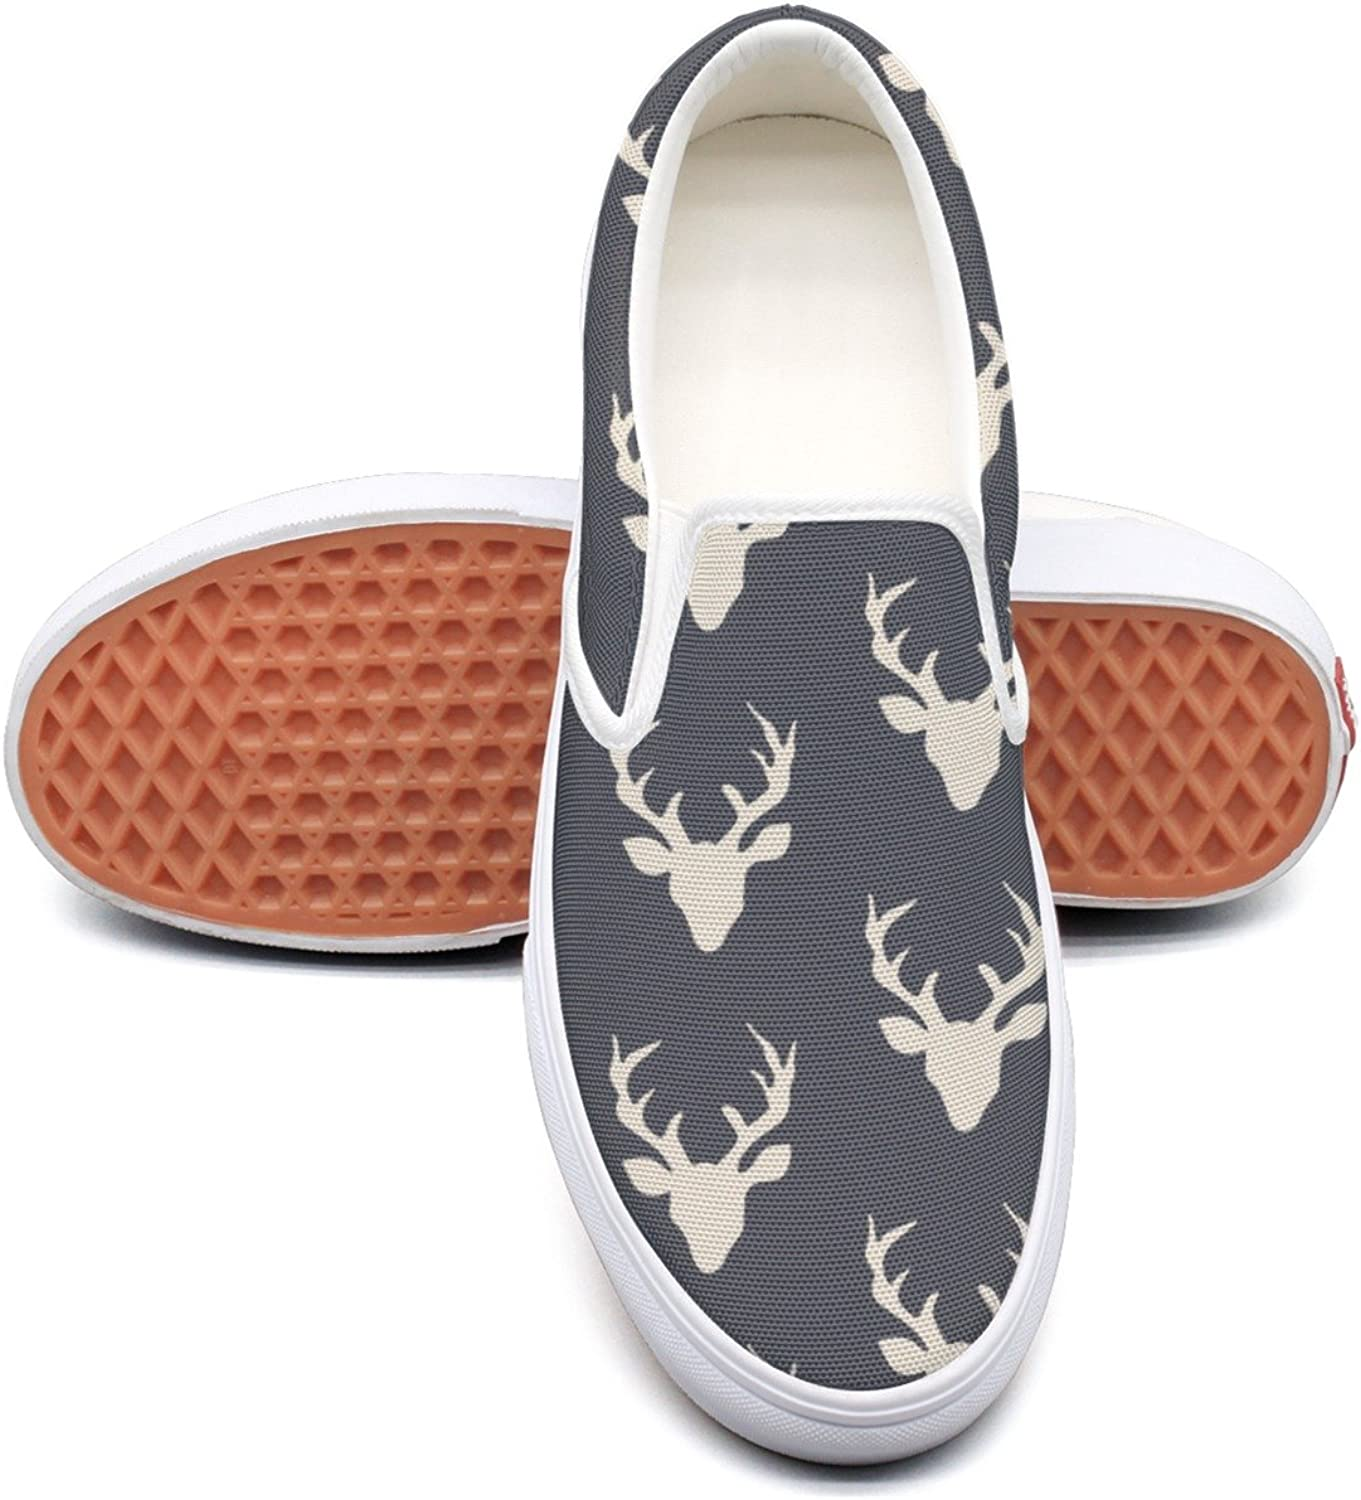 Vintage Forest Deer Head Womens Latest Canvas Boat shoes Low Top Cute Sneakers For Women